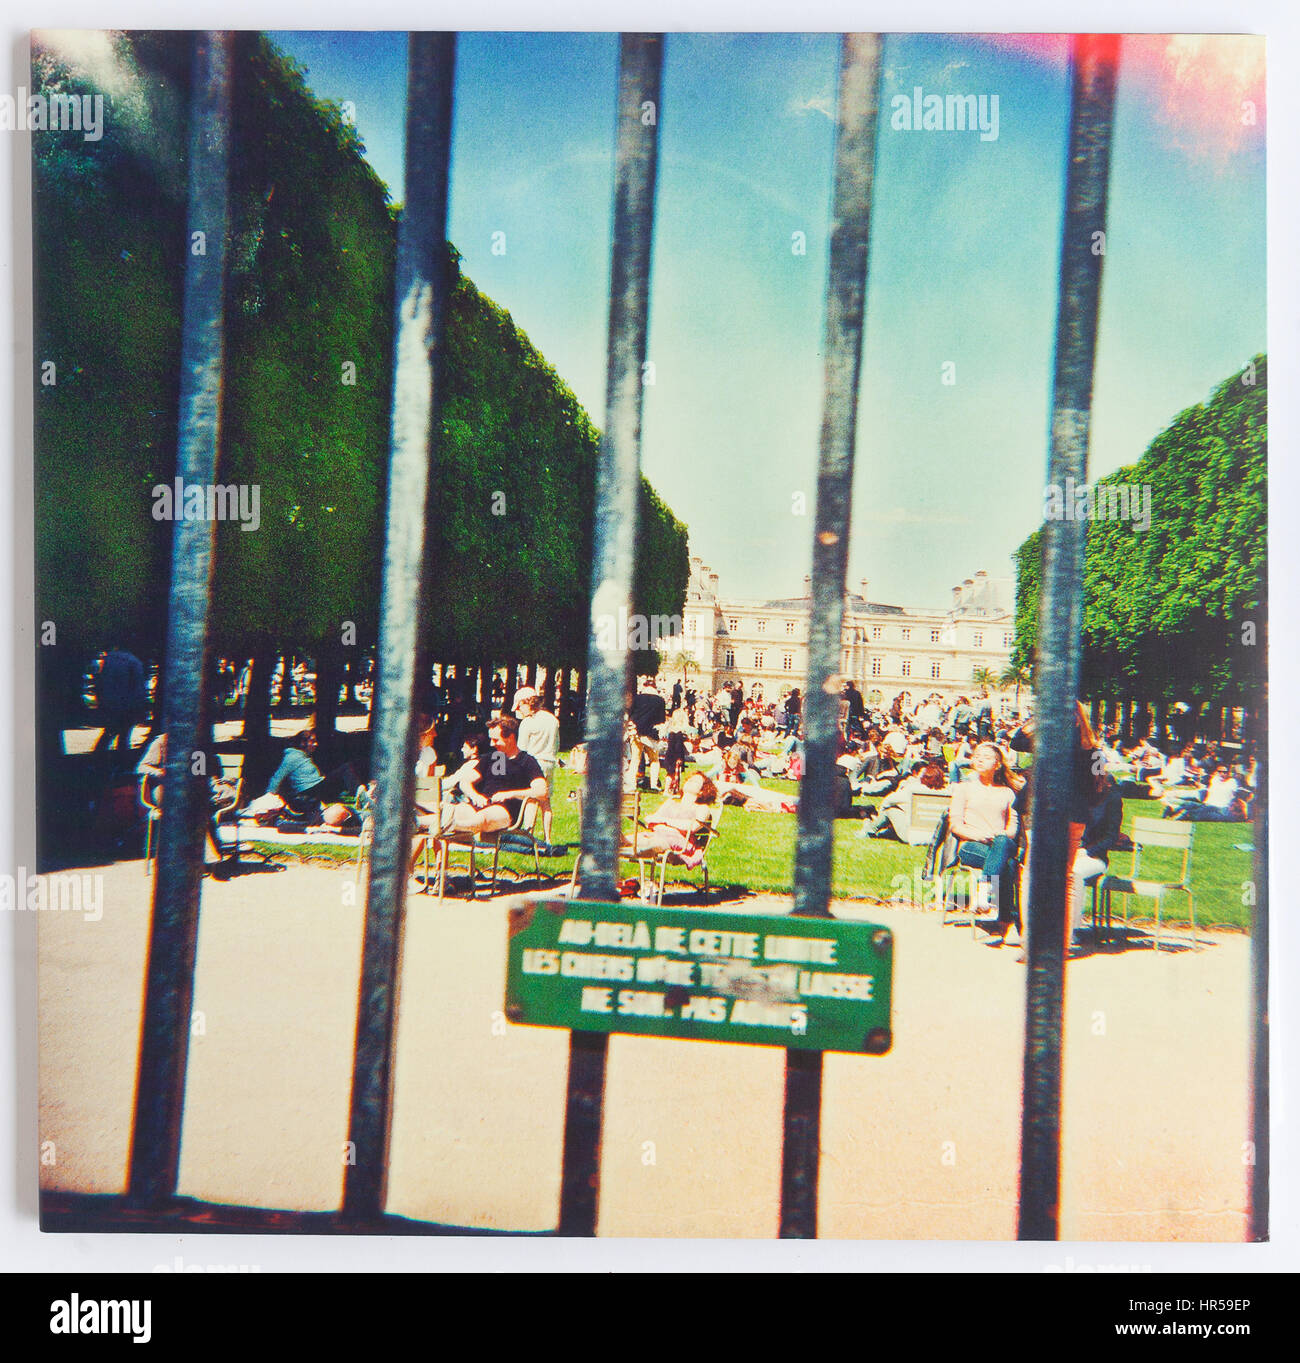 The cover of Lonerism, 2012 album by Tame Impala on Modular - Stock Image